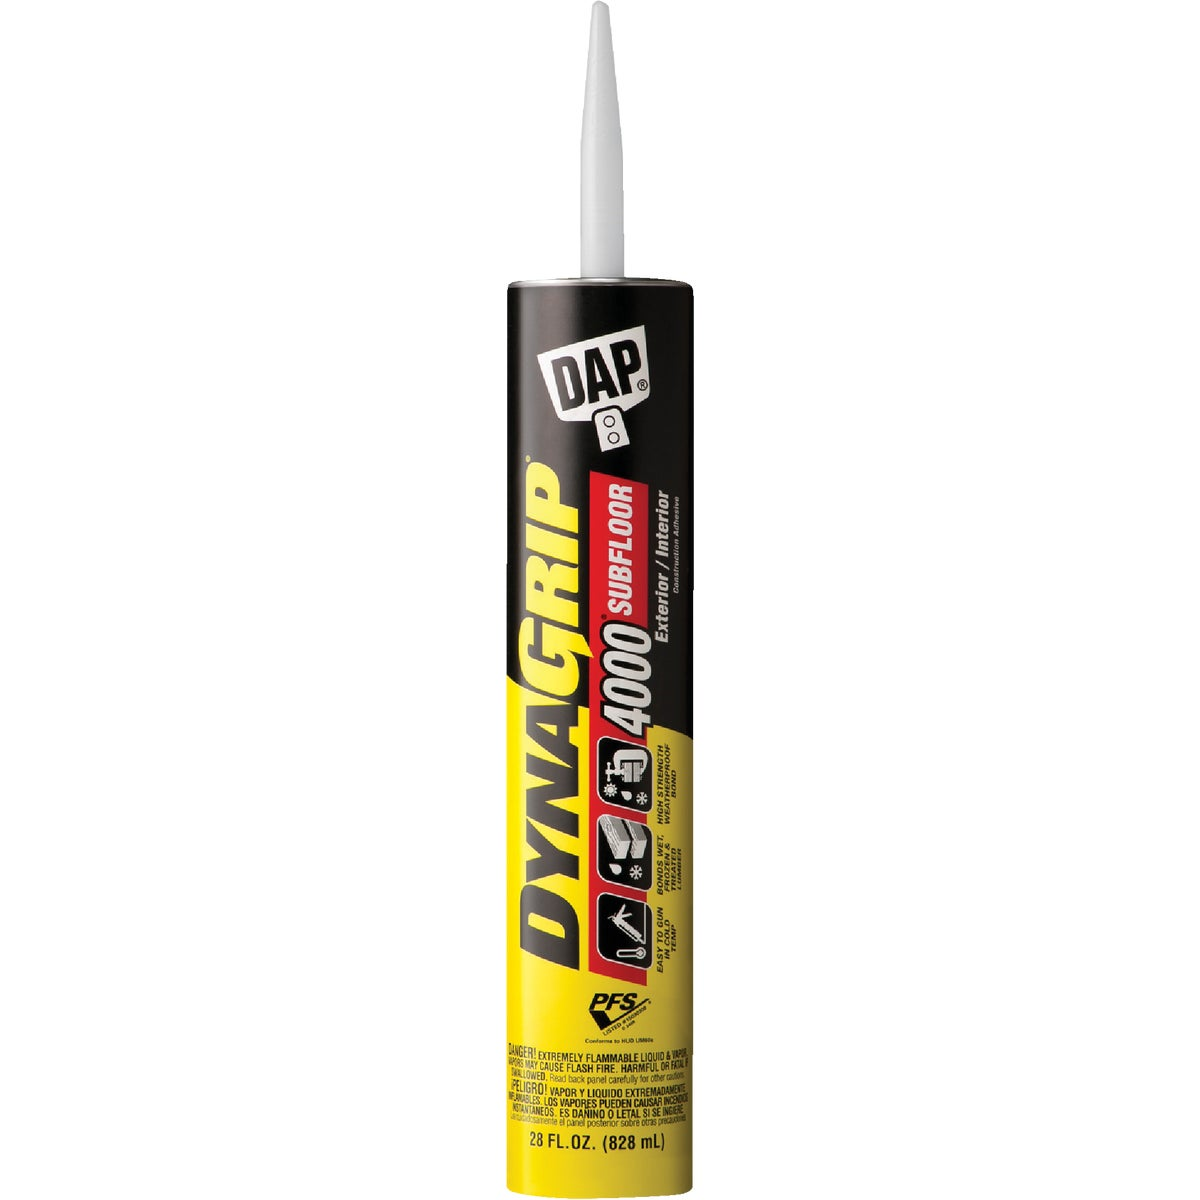 28OZ 4000 SUBFL ADHESIVE - 25117 by Dap Inc